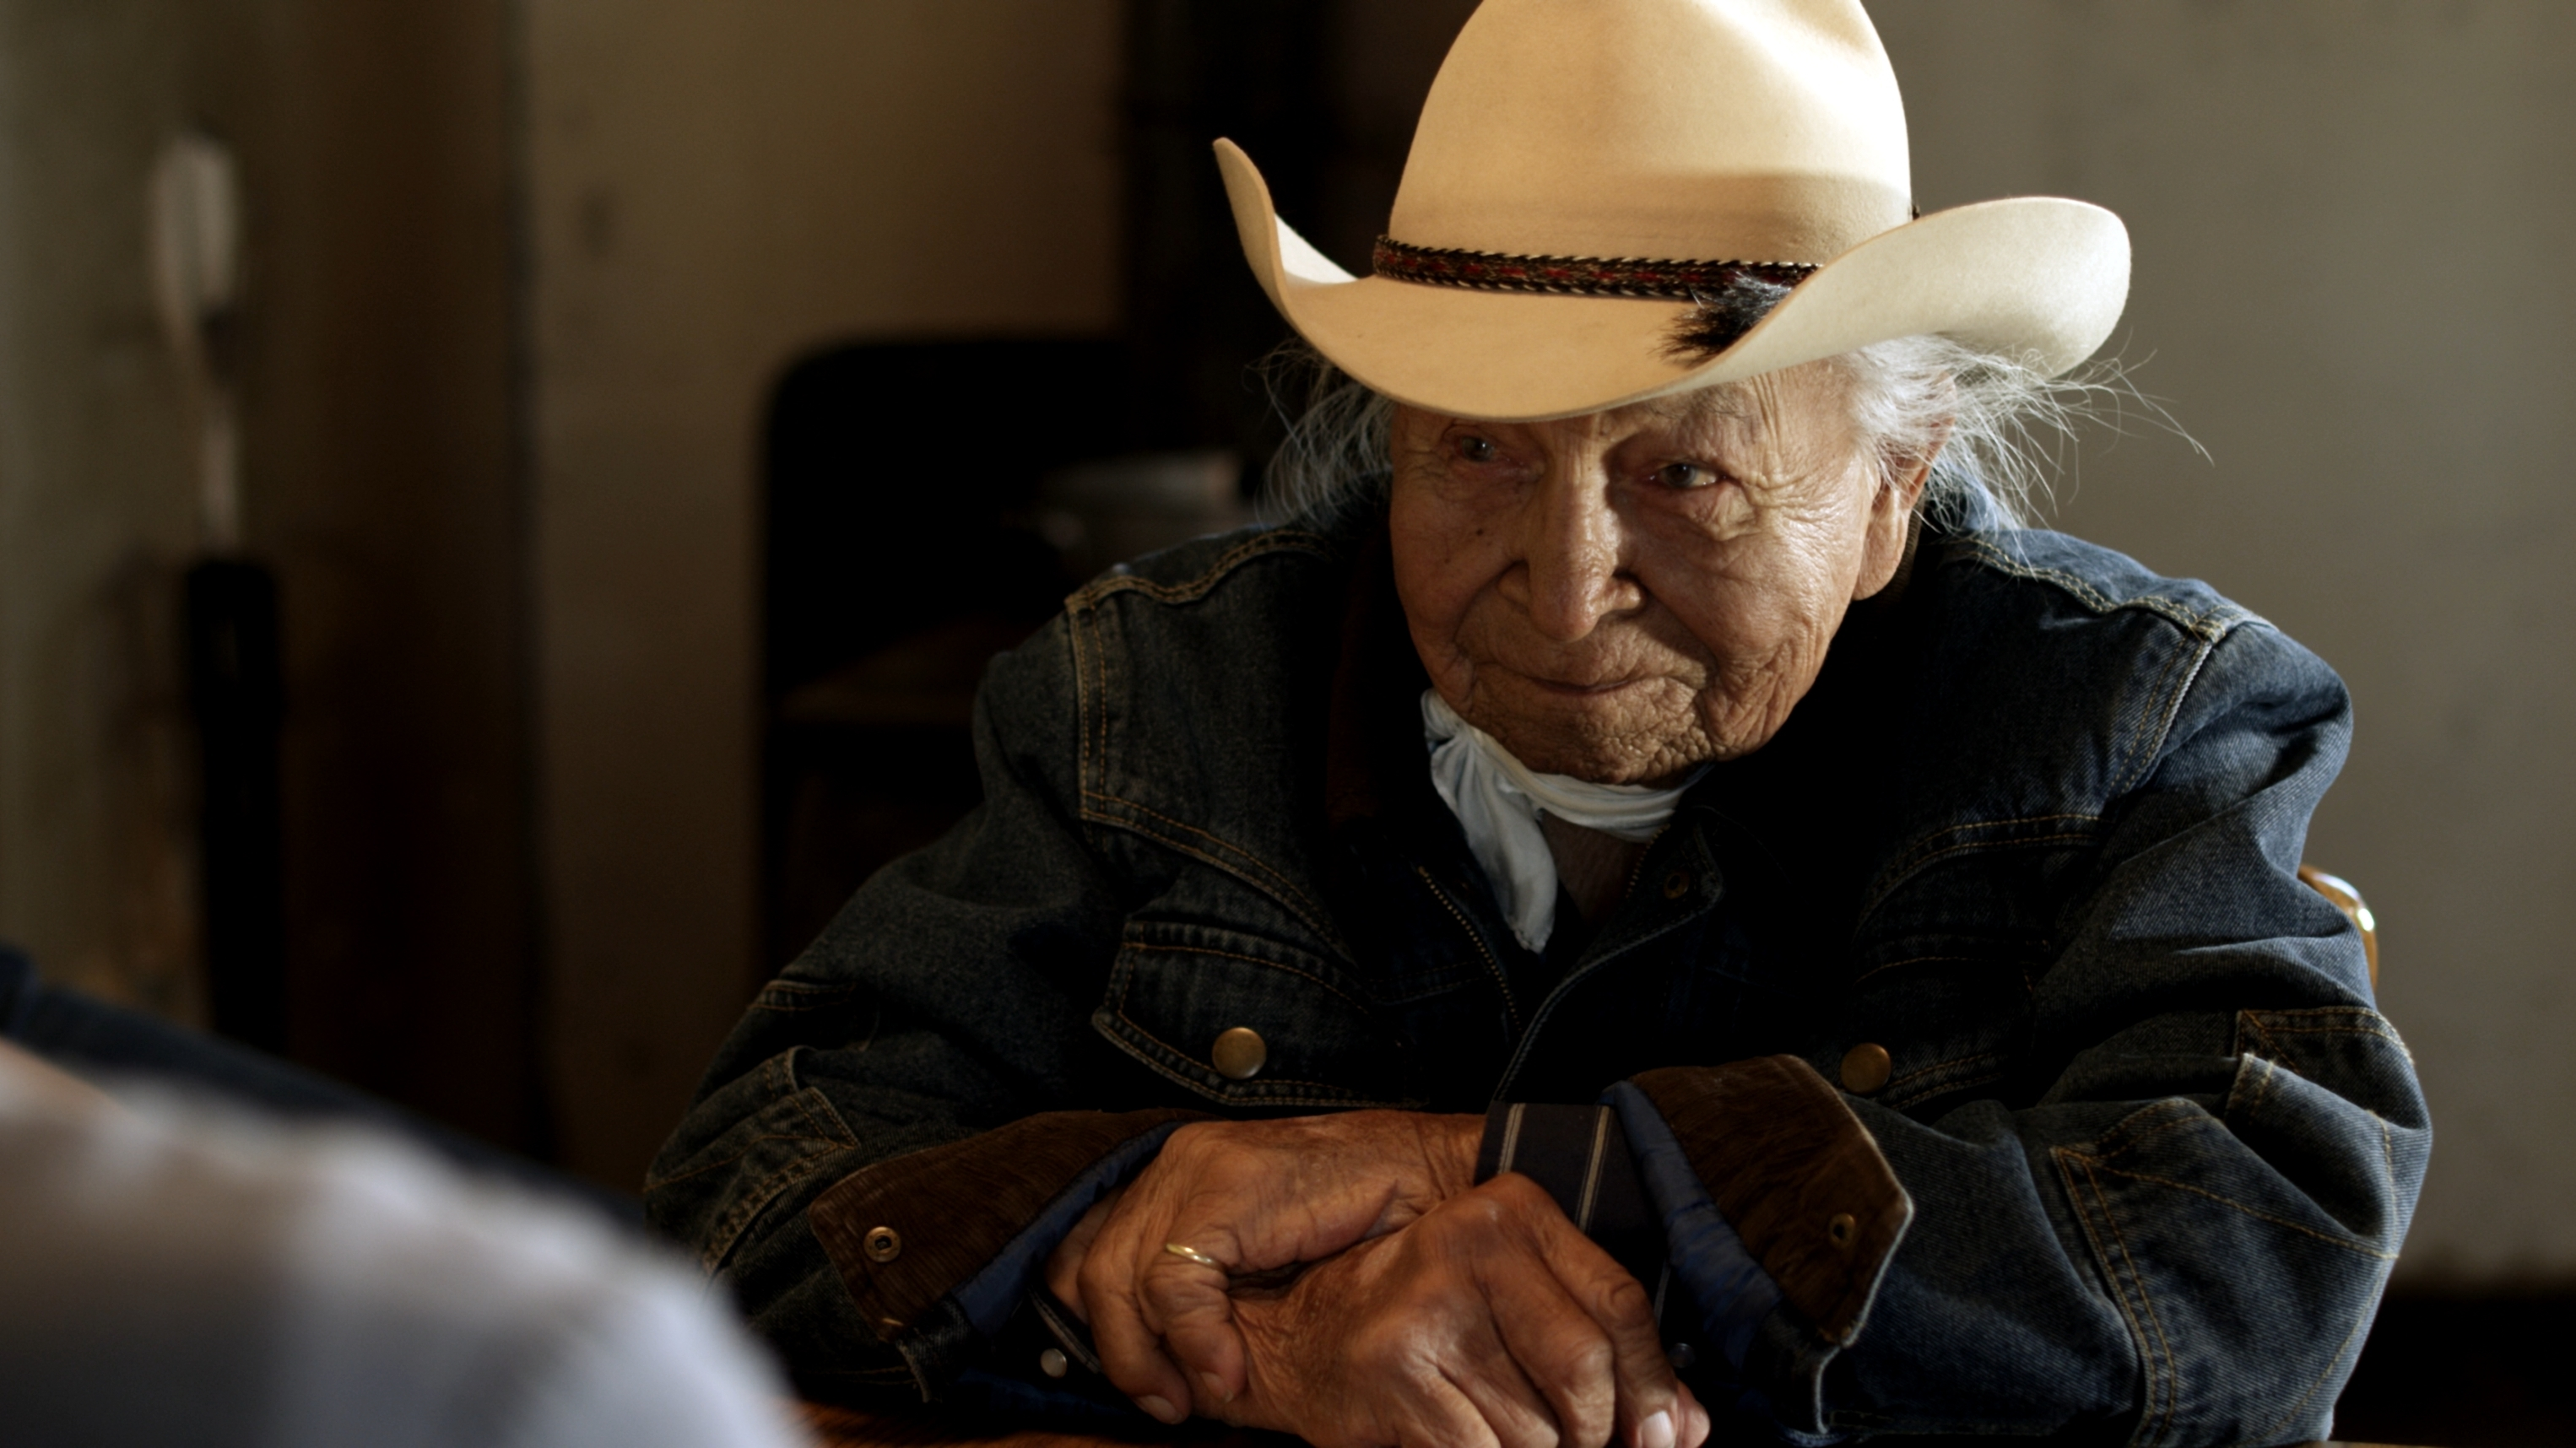 Lakota Chief, Musician, Cowboy And Actor, Dies At 97